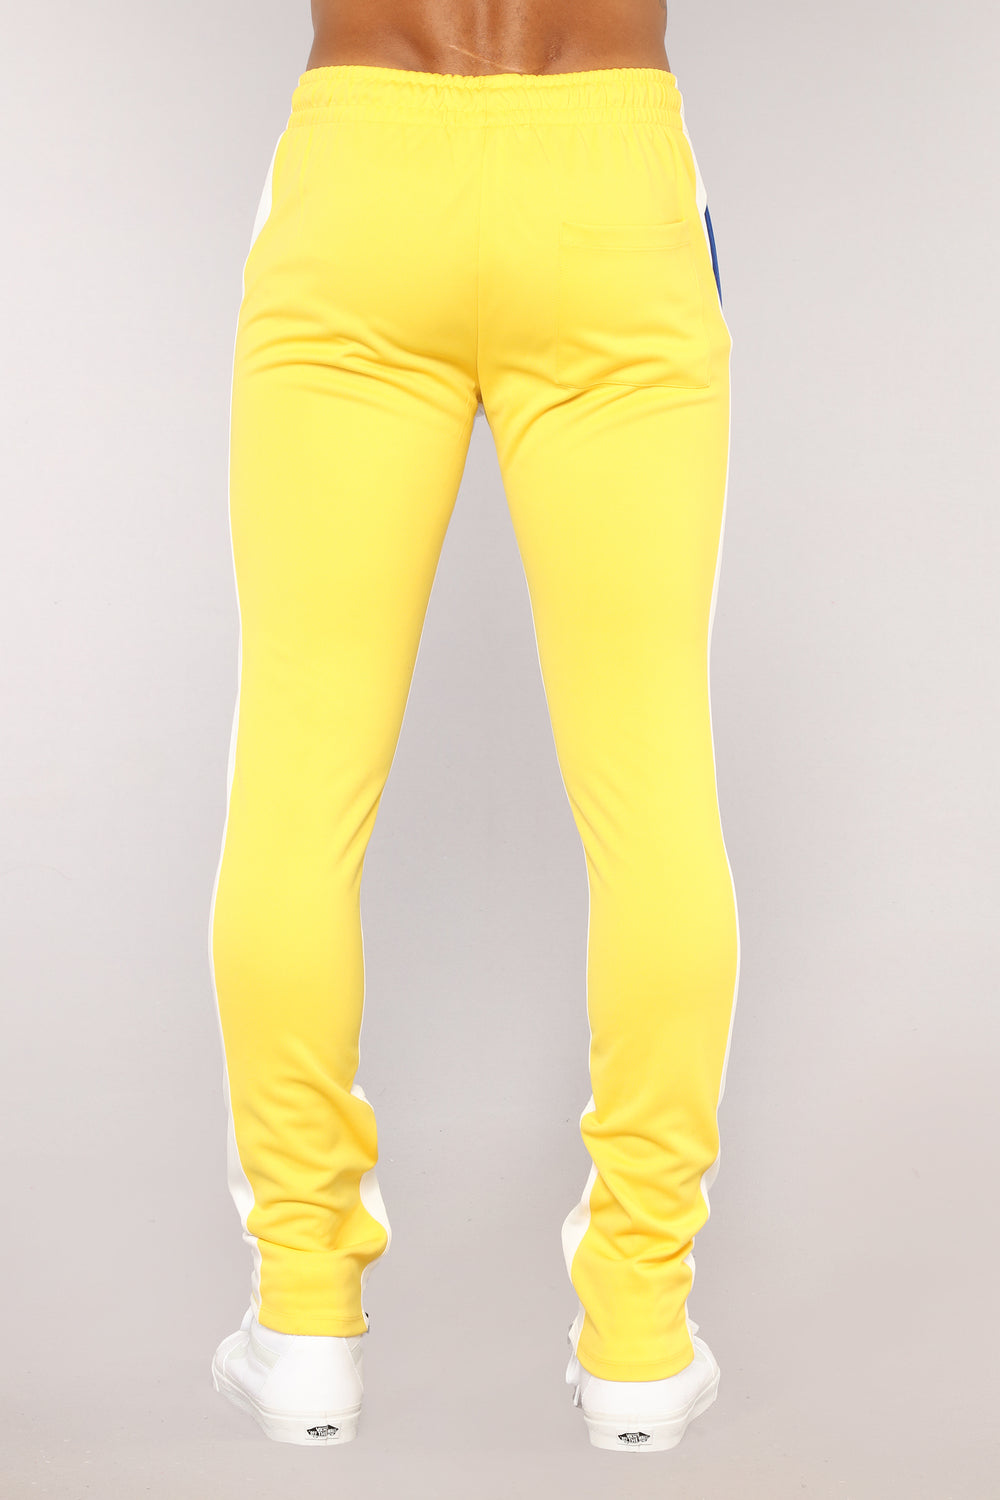 Union Track Pants - Yellow/Combo